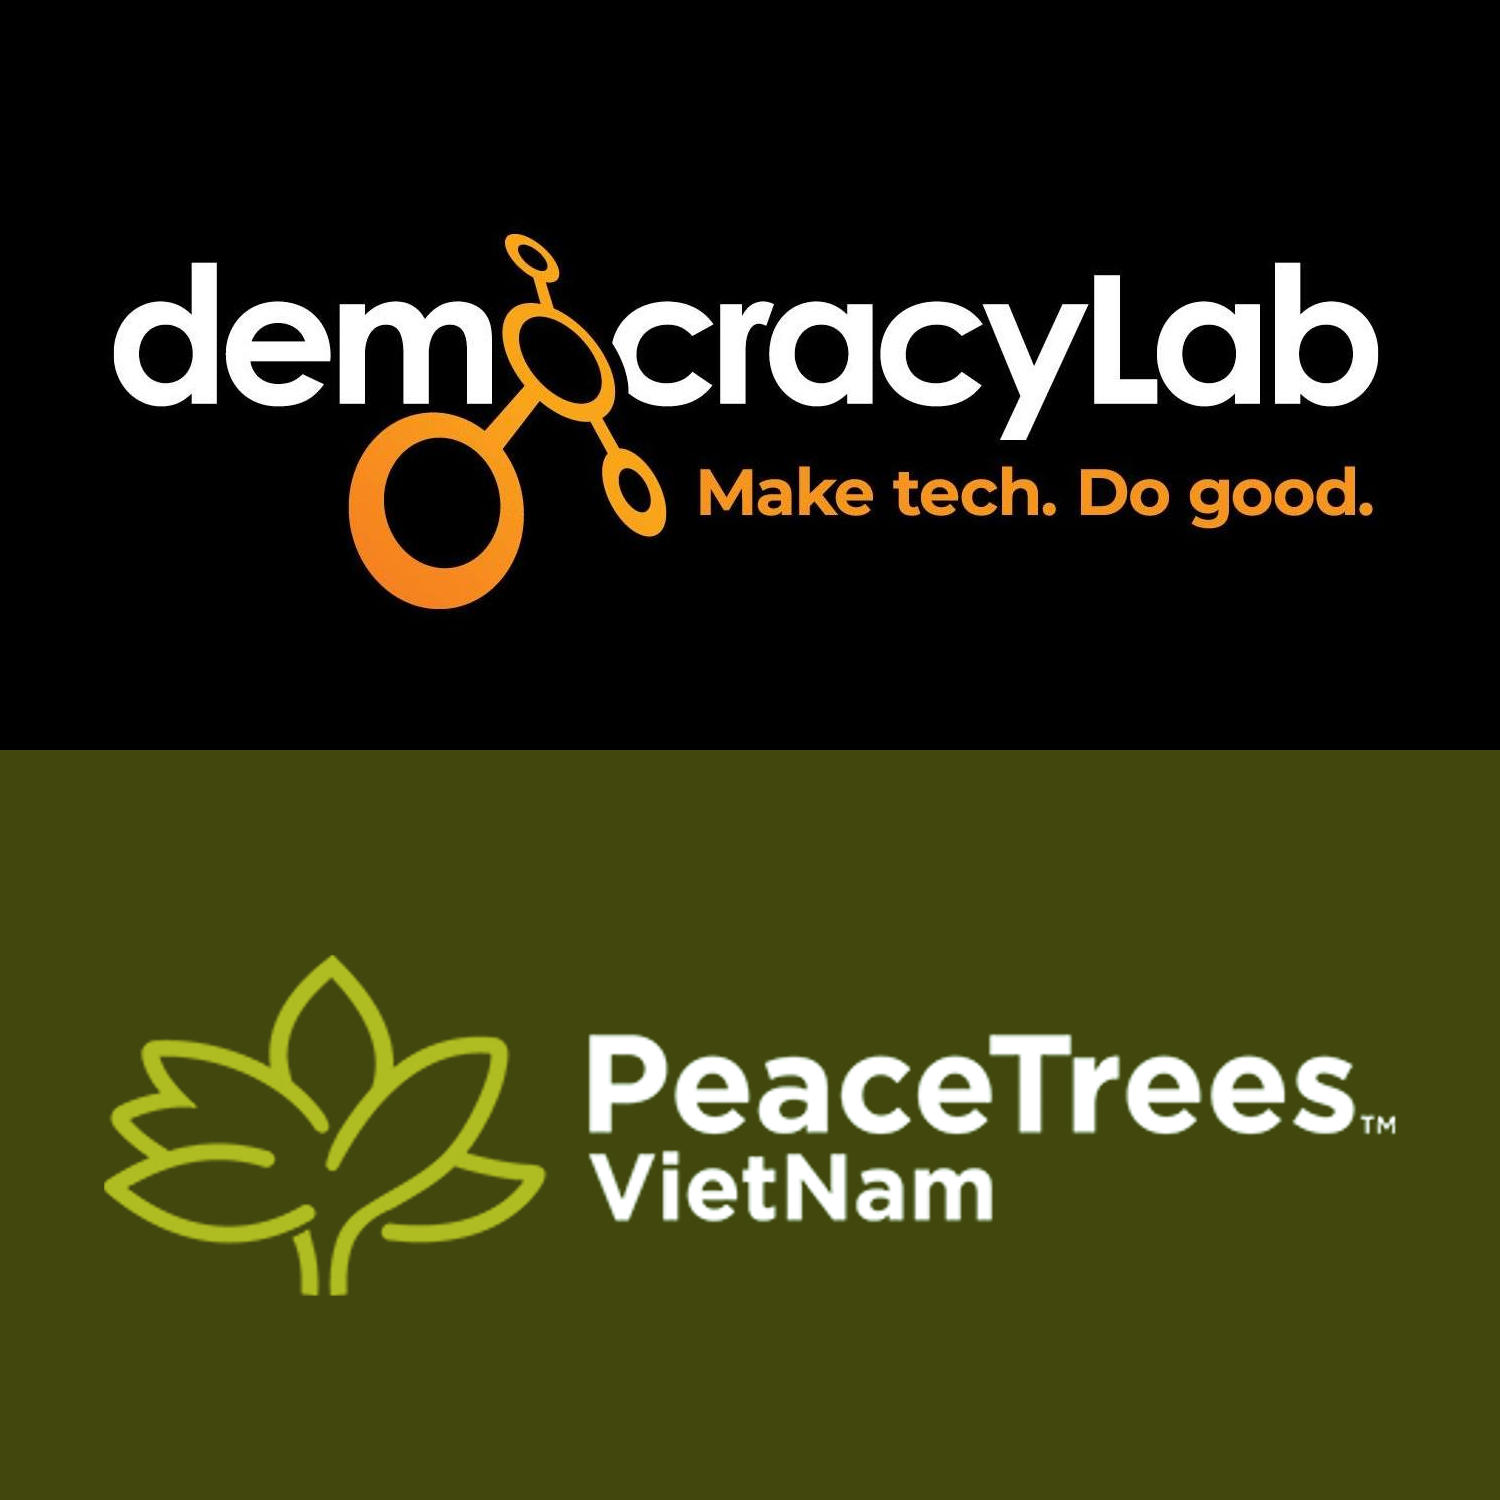 DemocracyLab Partnered Project